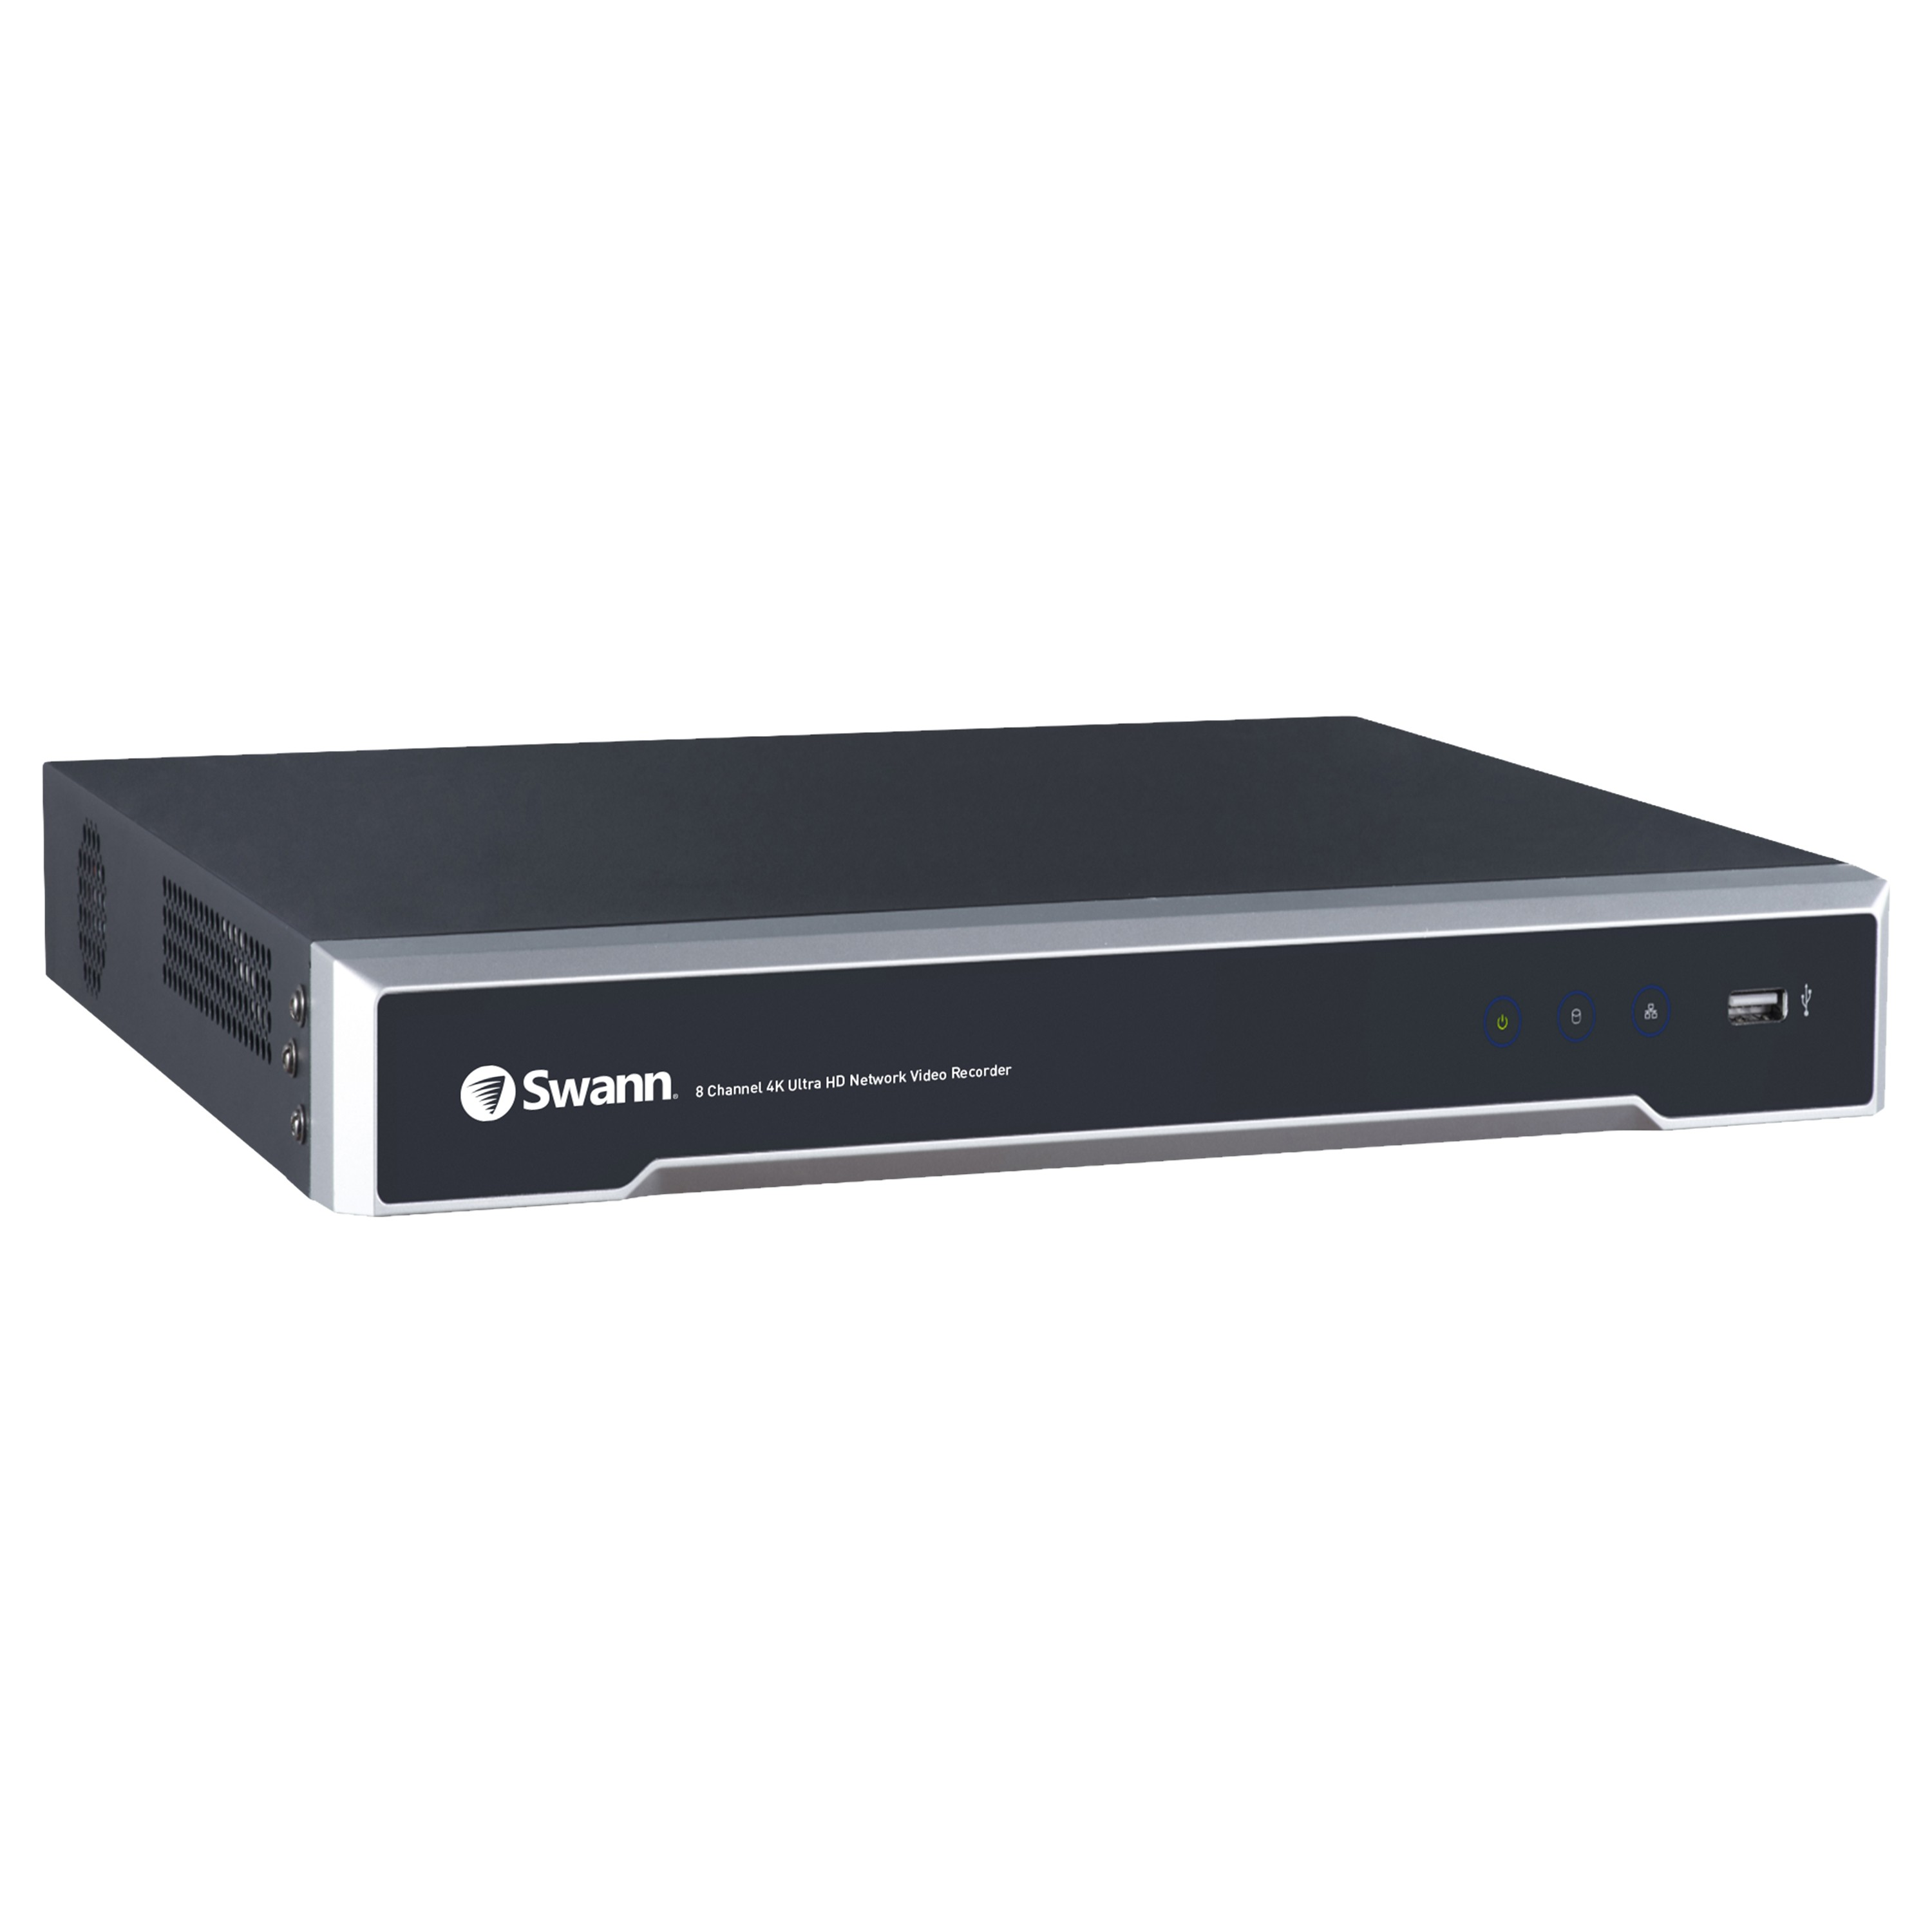 SWNVR-88000H Swann 8 Channel Network Video Recorder: 4K Ultra HD NVR-8000 with 4TB HDD -